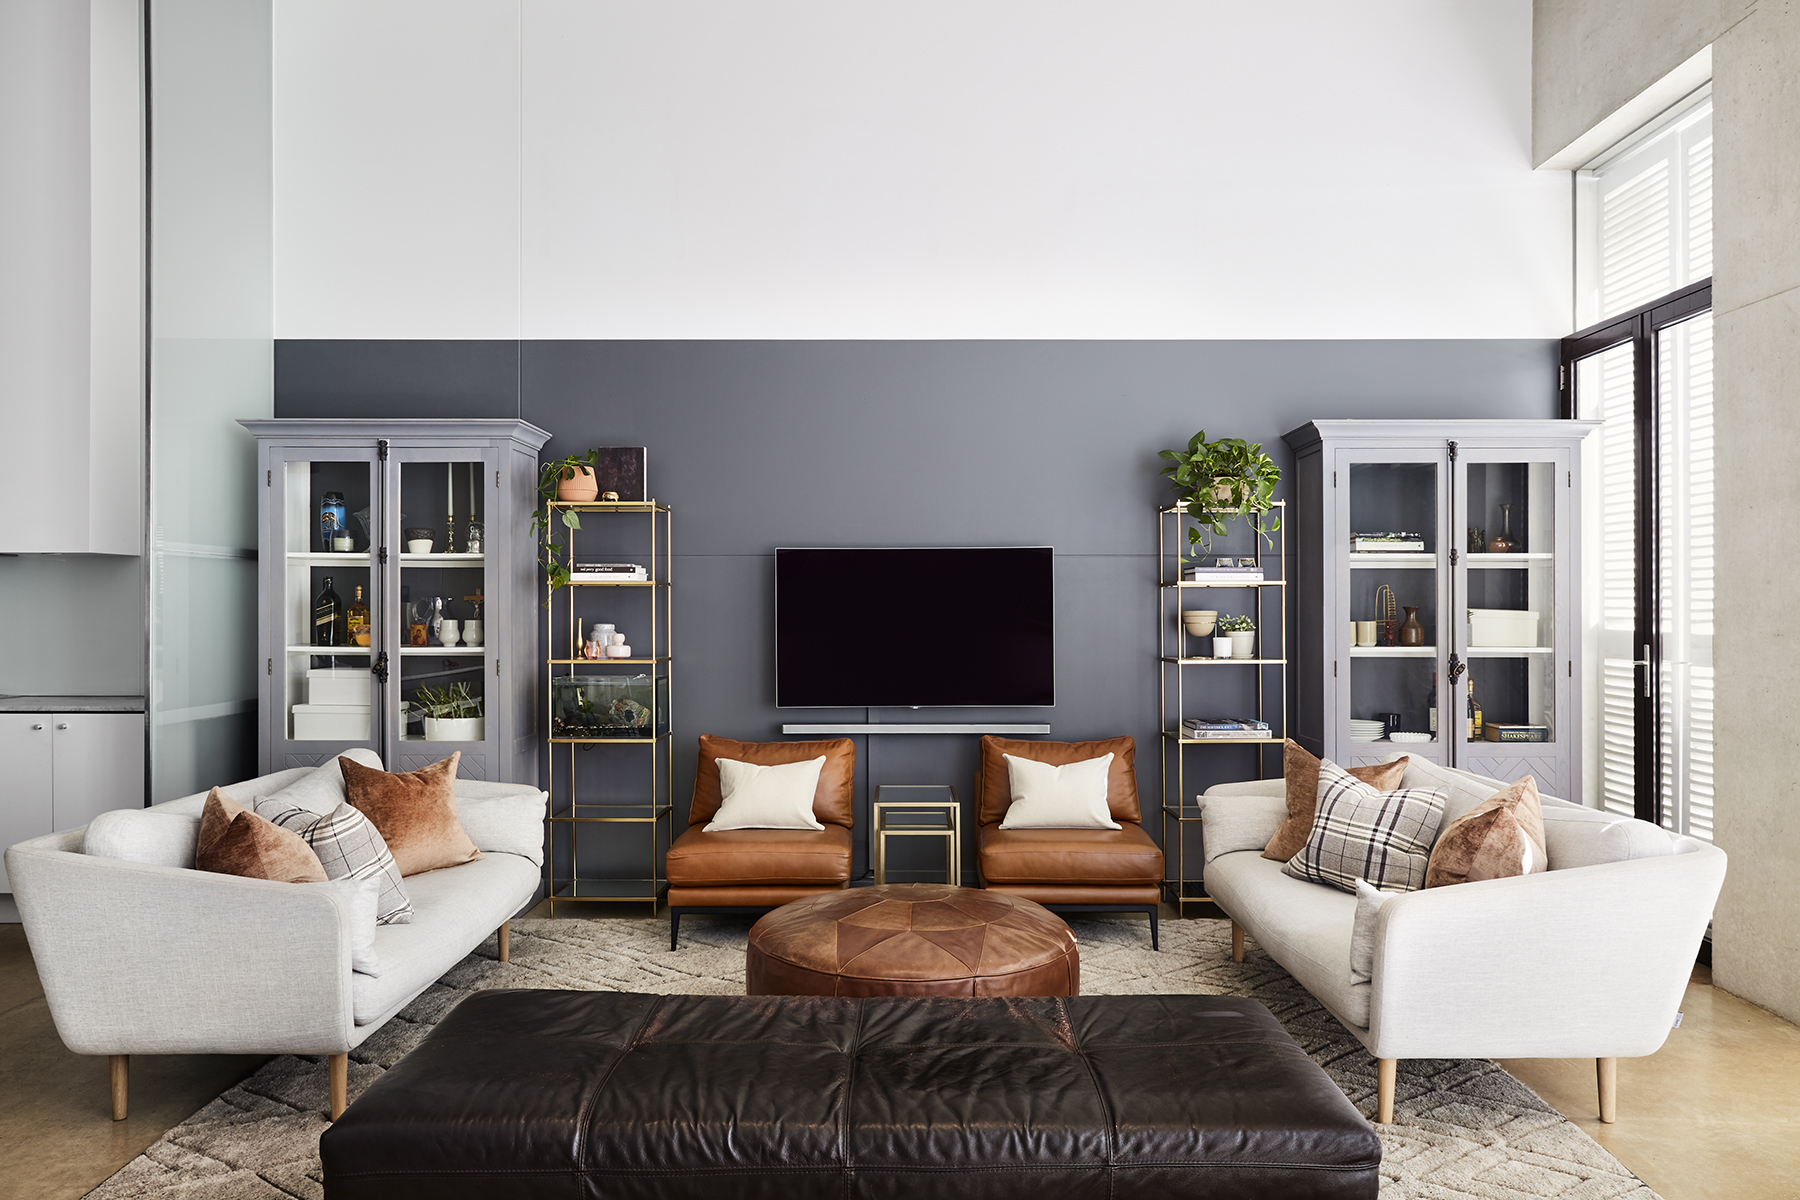 living room with cream couches and brown leather chairs and grey bookcases